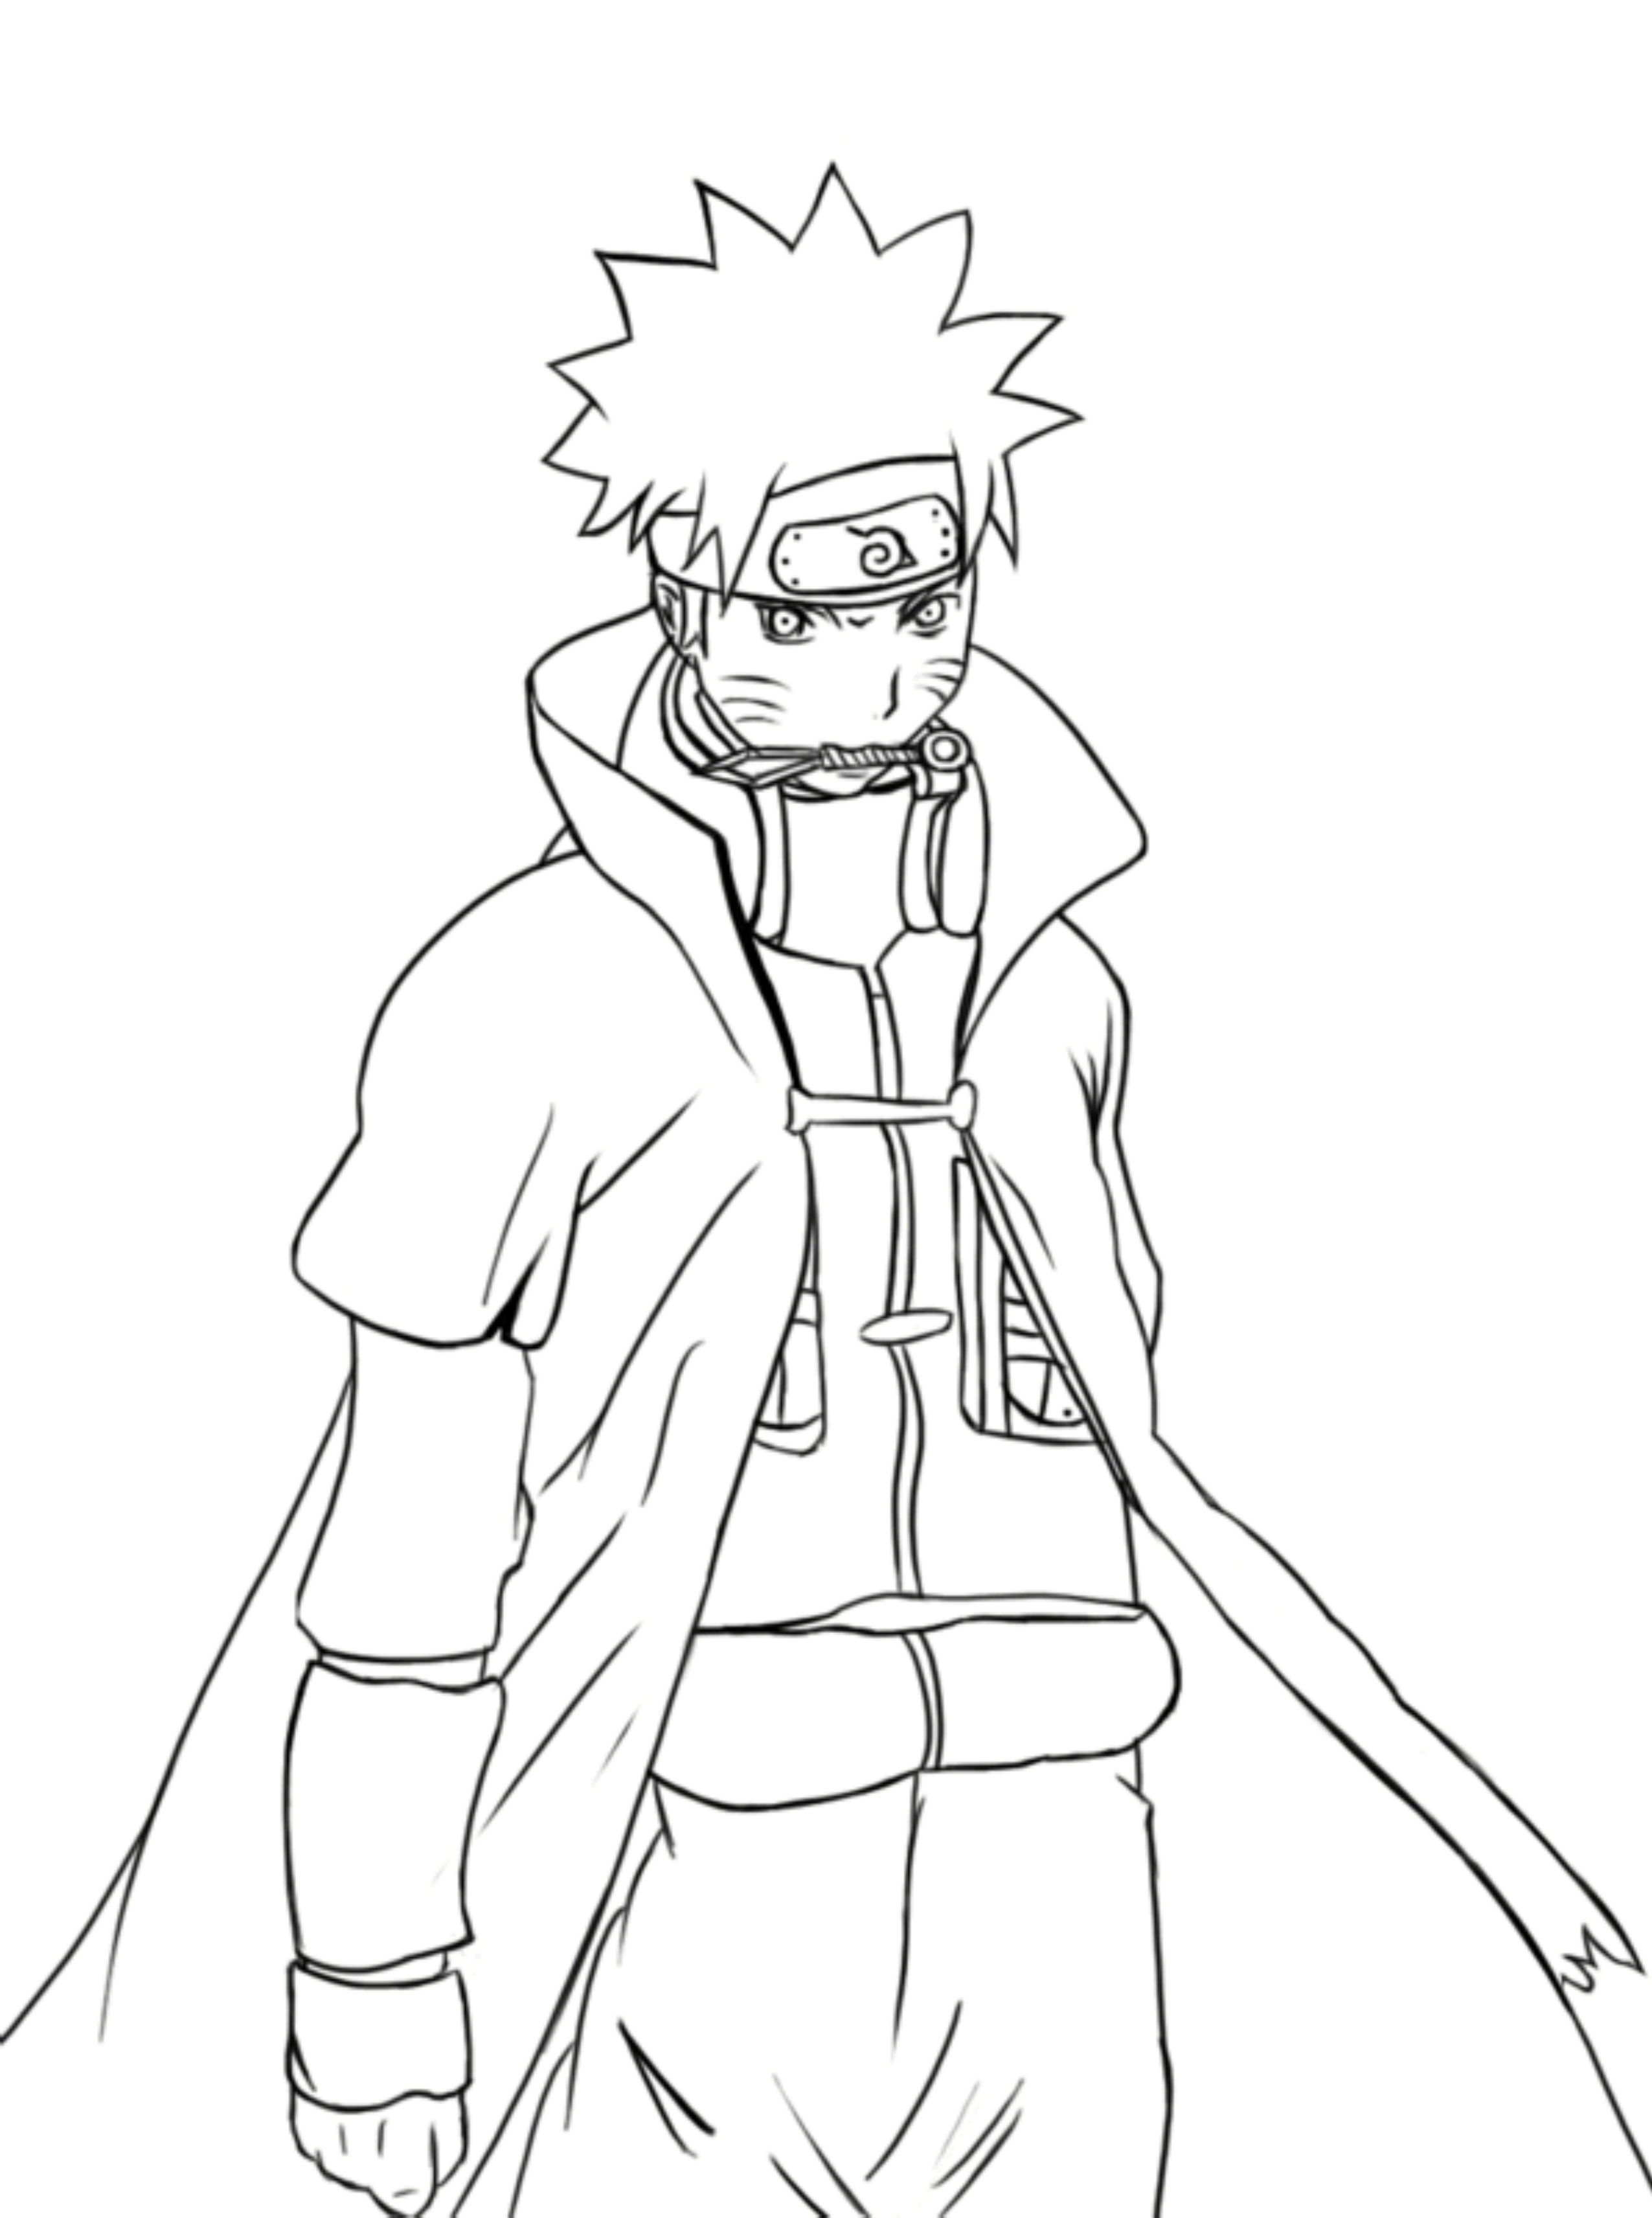 Coloring Pages Of Naruto Shippuden Characters - Printable ...